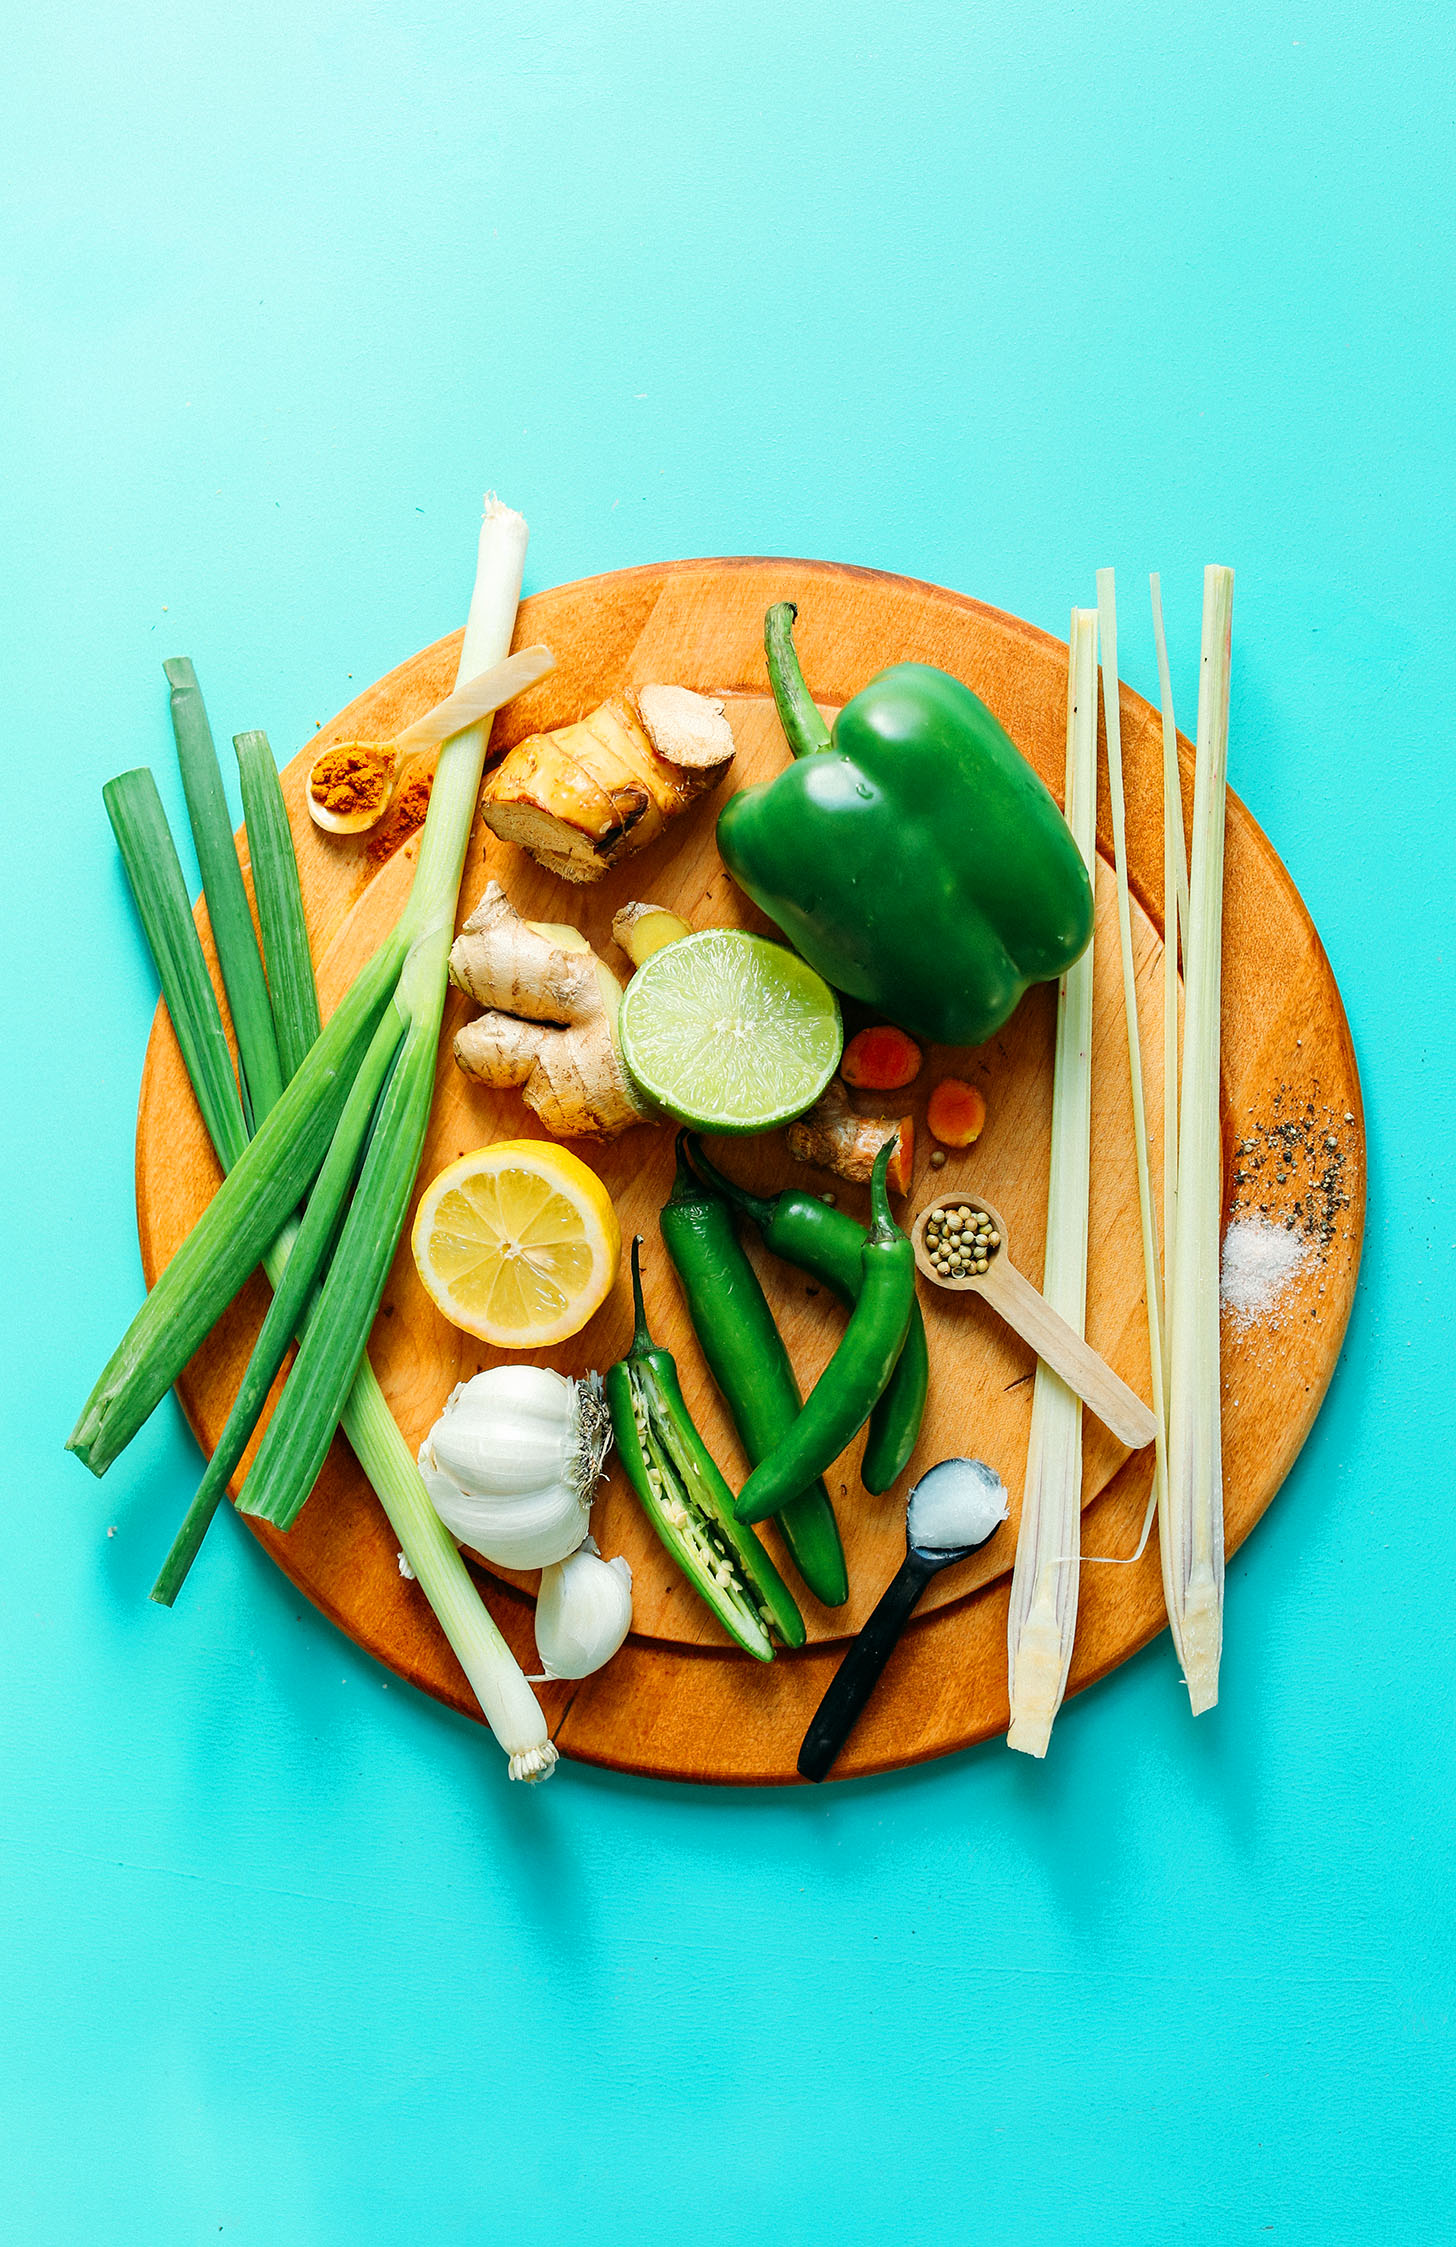 Wood cutting board with lemongrass, green bell pepper, lime, turmeric, galangal, ginger, lemon, serranos, garlic, green onion, salt, and spices for homemade easy green curry paste